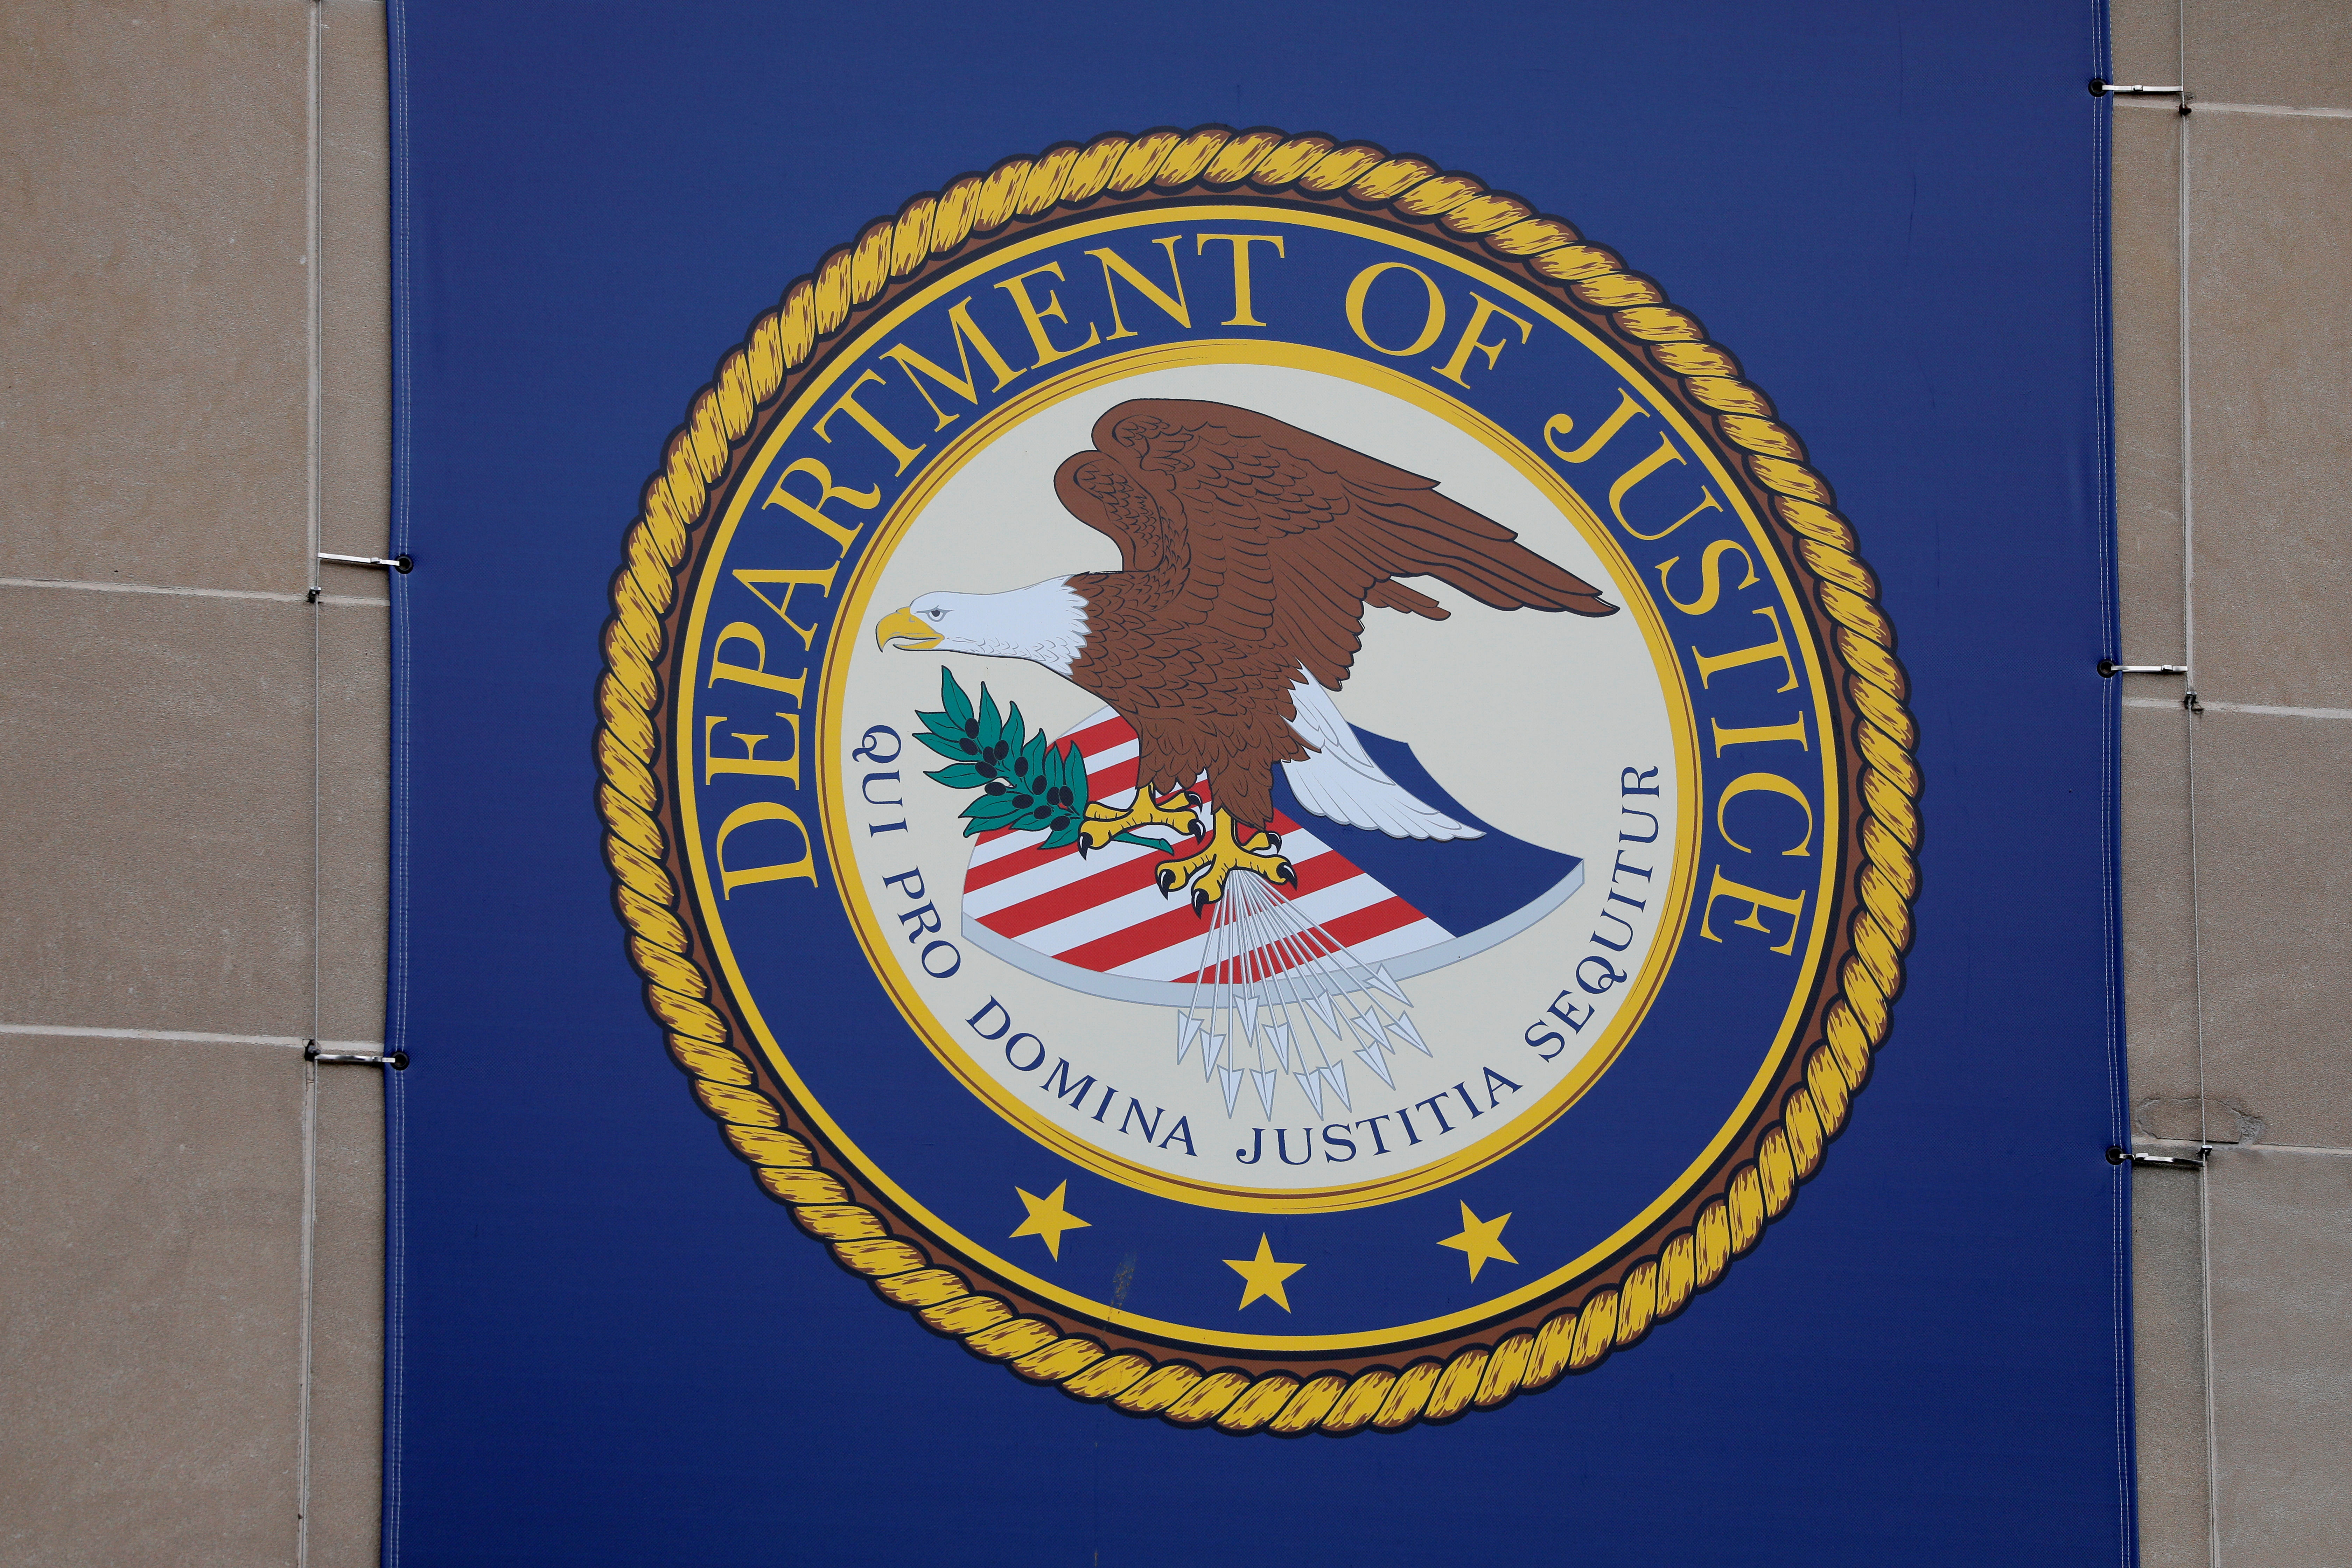 The crest of the United States Department of Justice is seen at their headquarters in Washington, D.C., May 10, 2021. REUTERS/Andrew Kelly